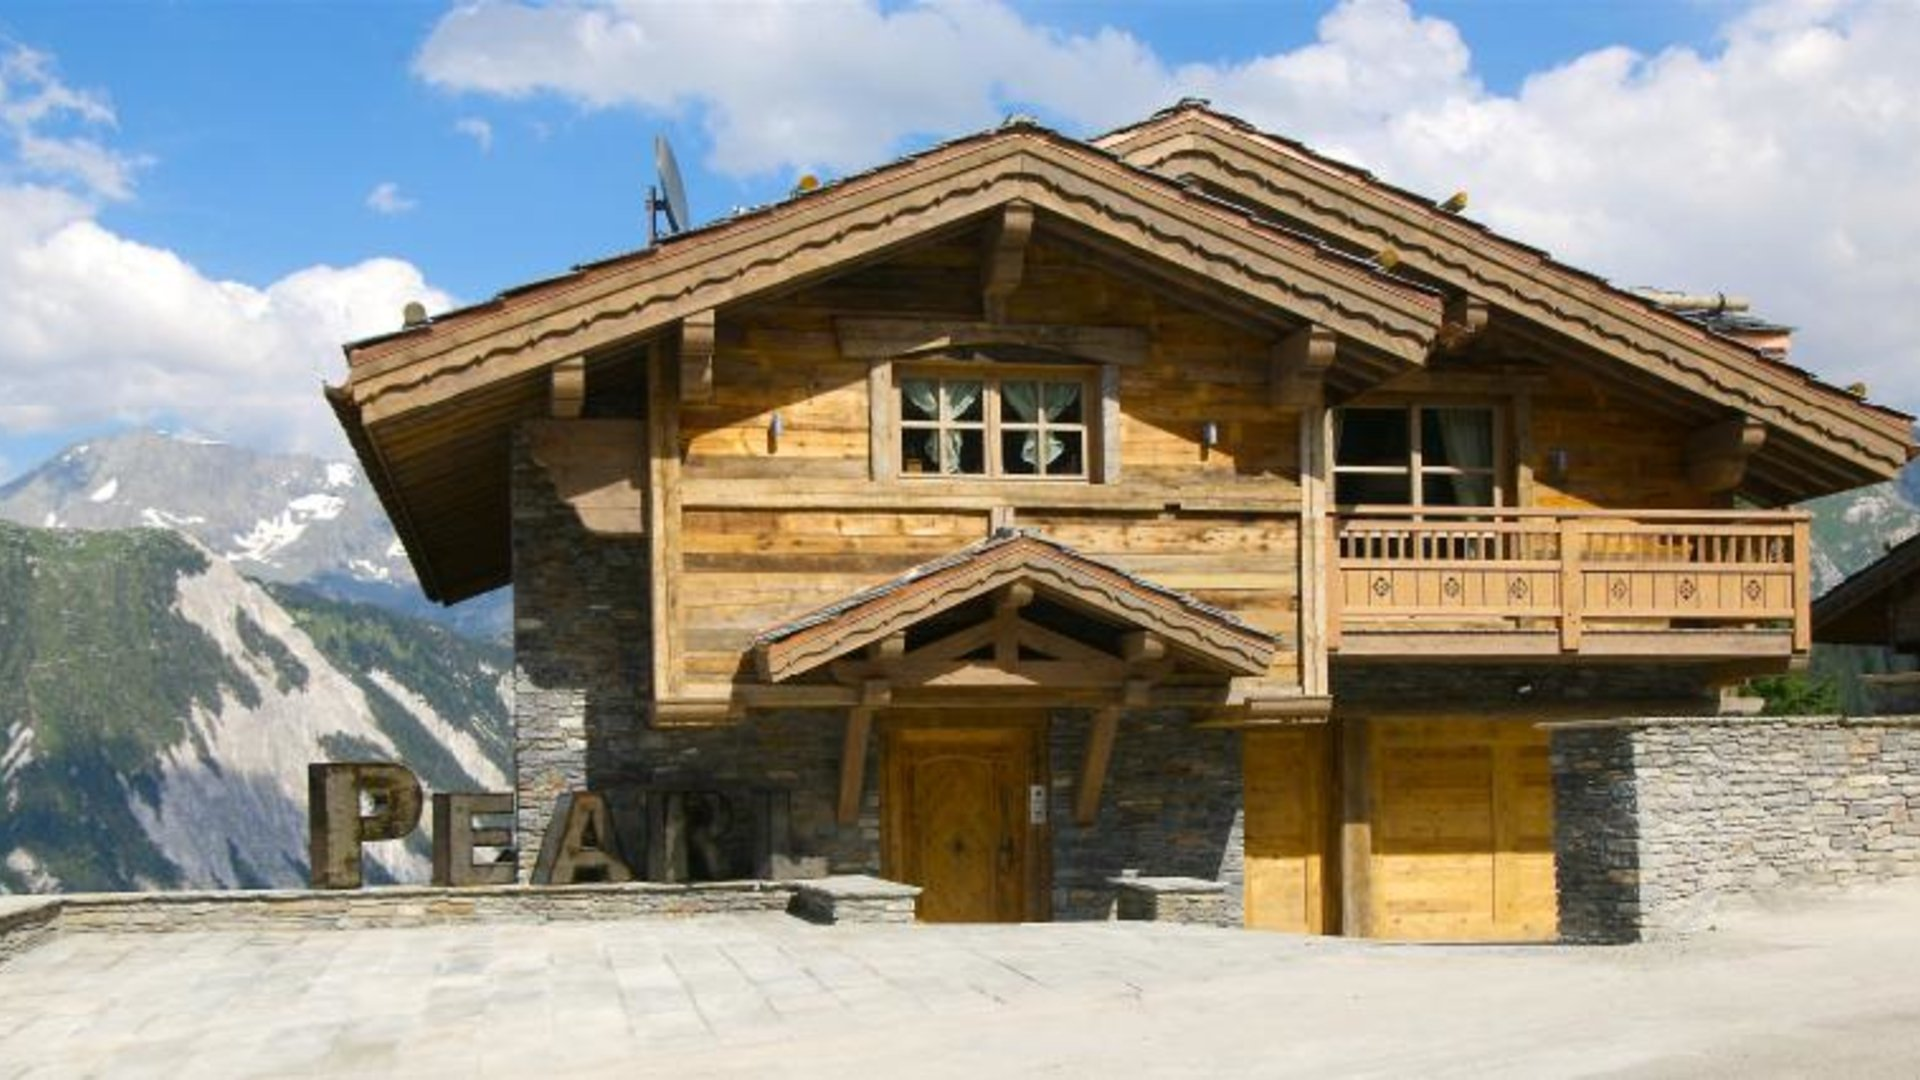 Chalet P, Courchevel, France